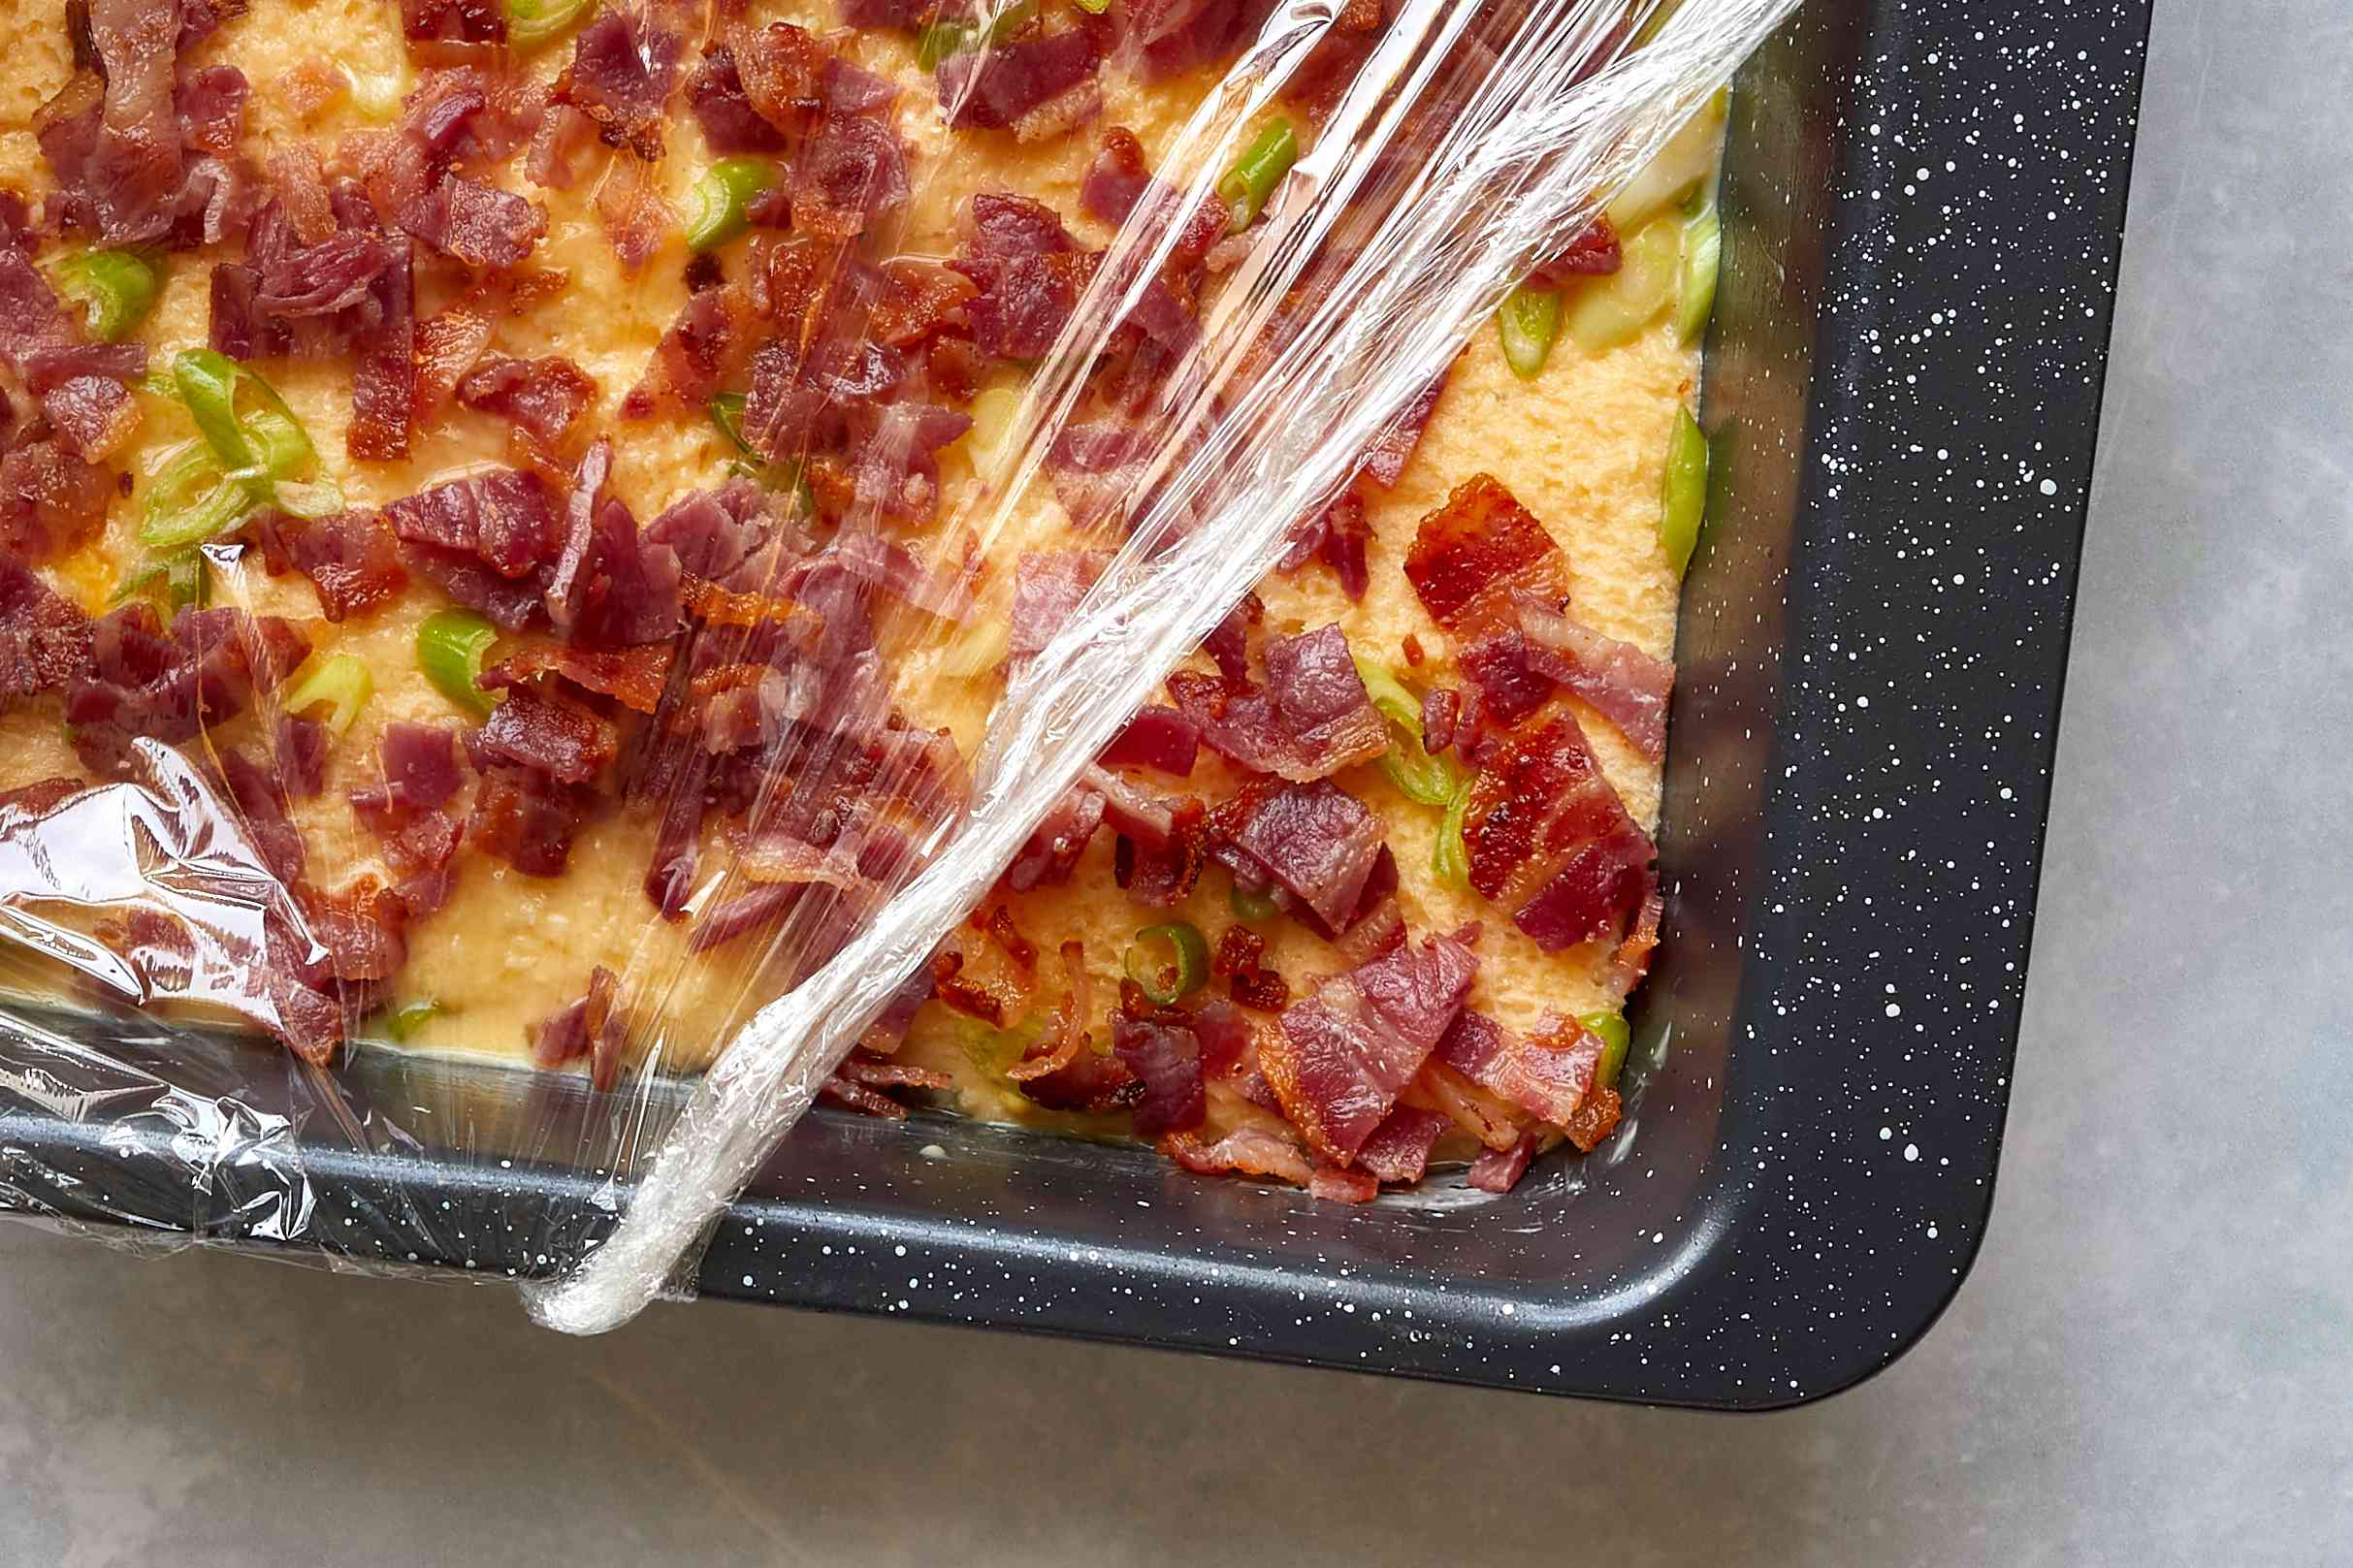 plastic removed from bacon and egg casserole dish